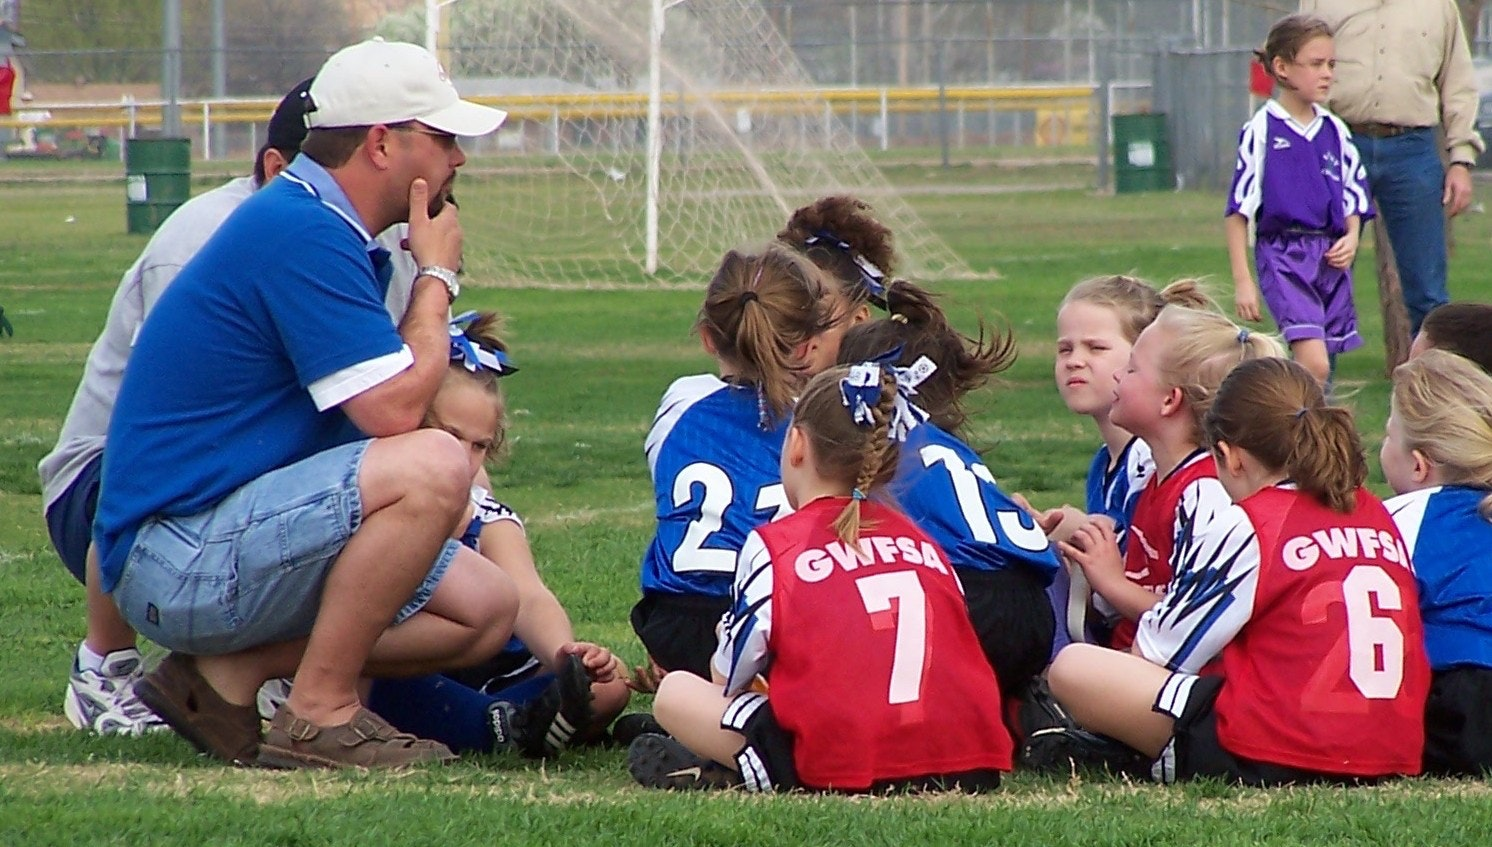 Coaching Tips For Youth Soccer